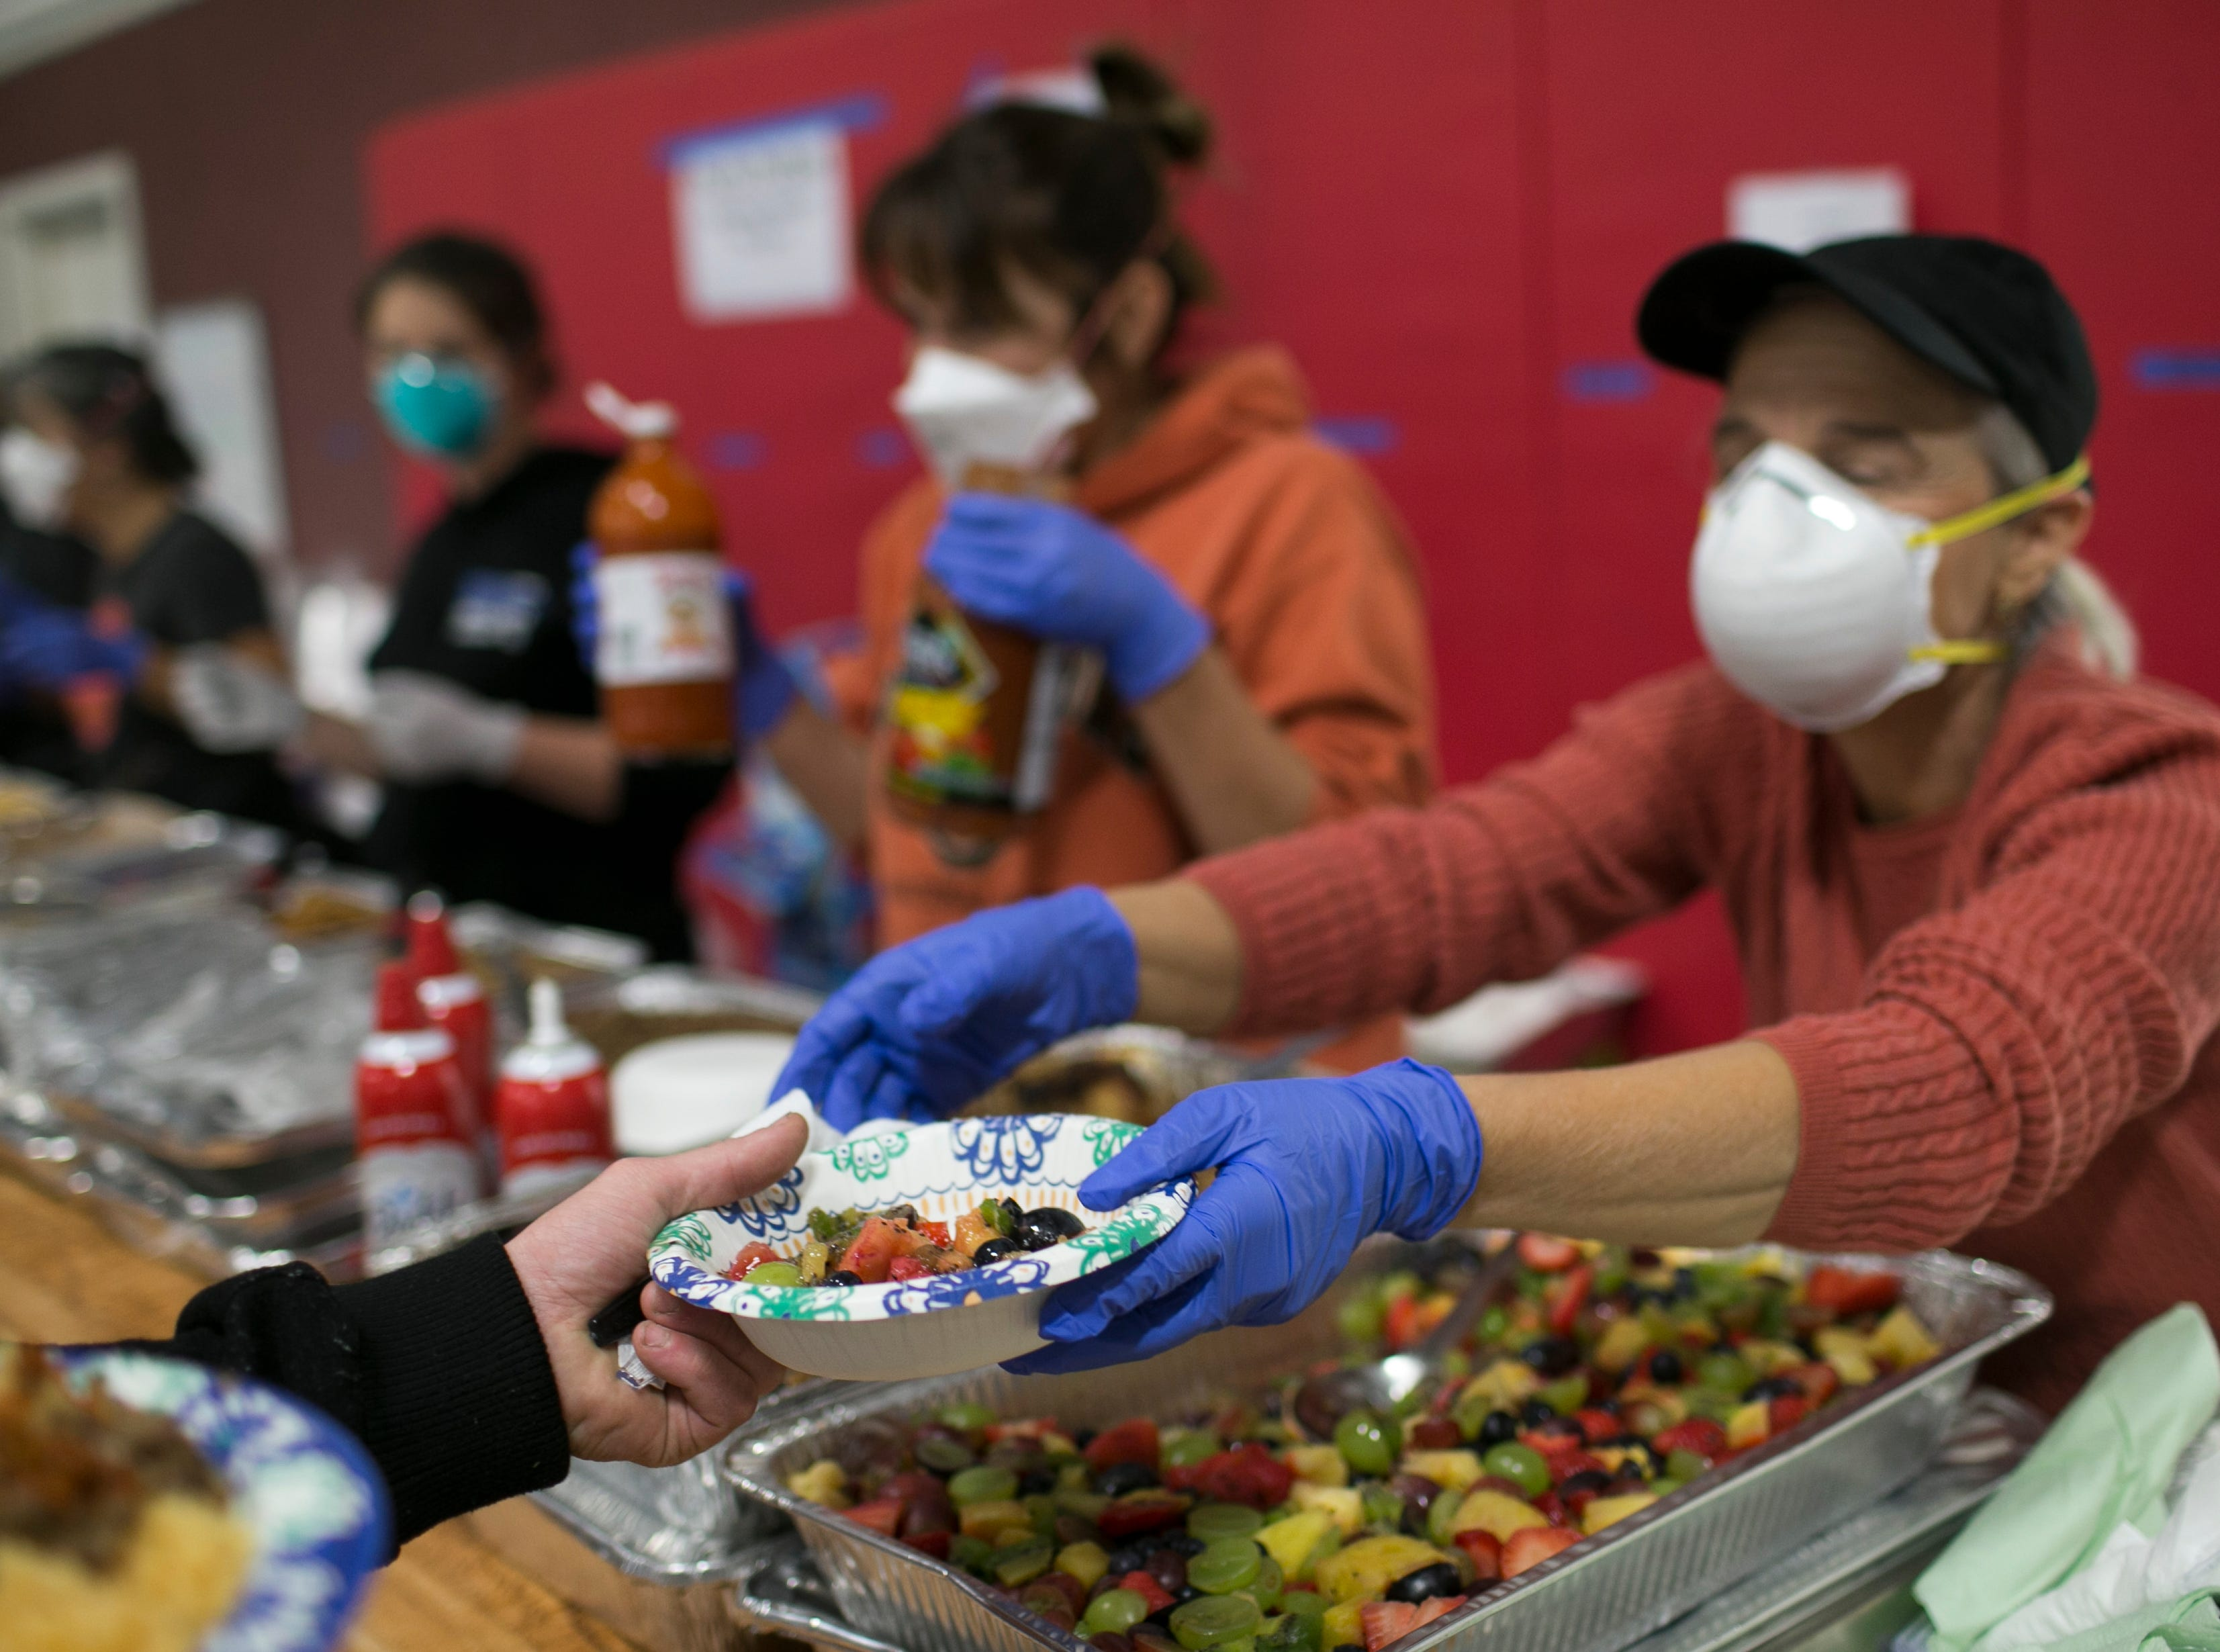 Dinner is passed out by volunteers to Camp Fire evacuees at the East Avenue Church Shelter in Chico, California on November 16, 2018.